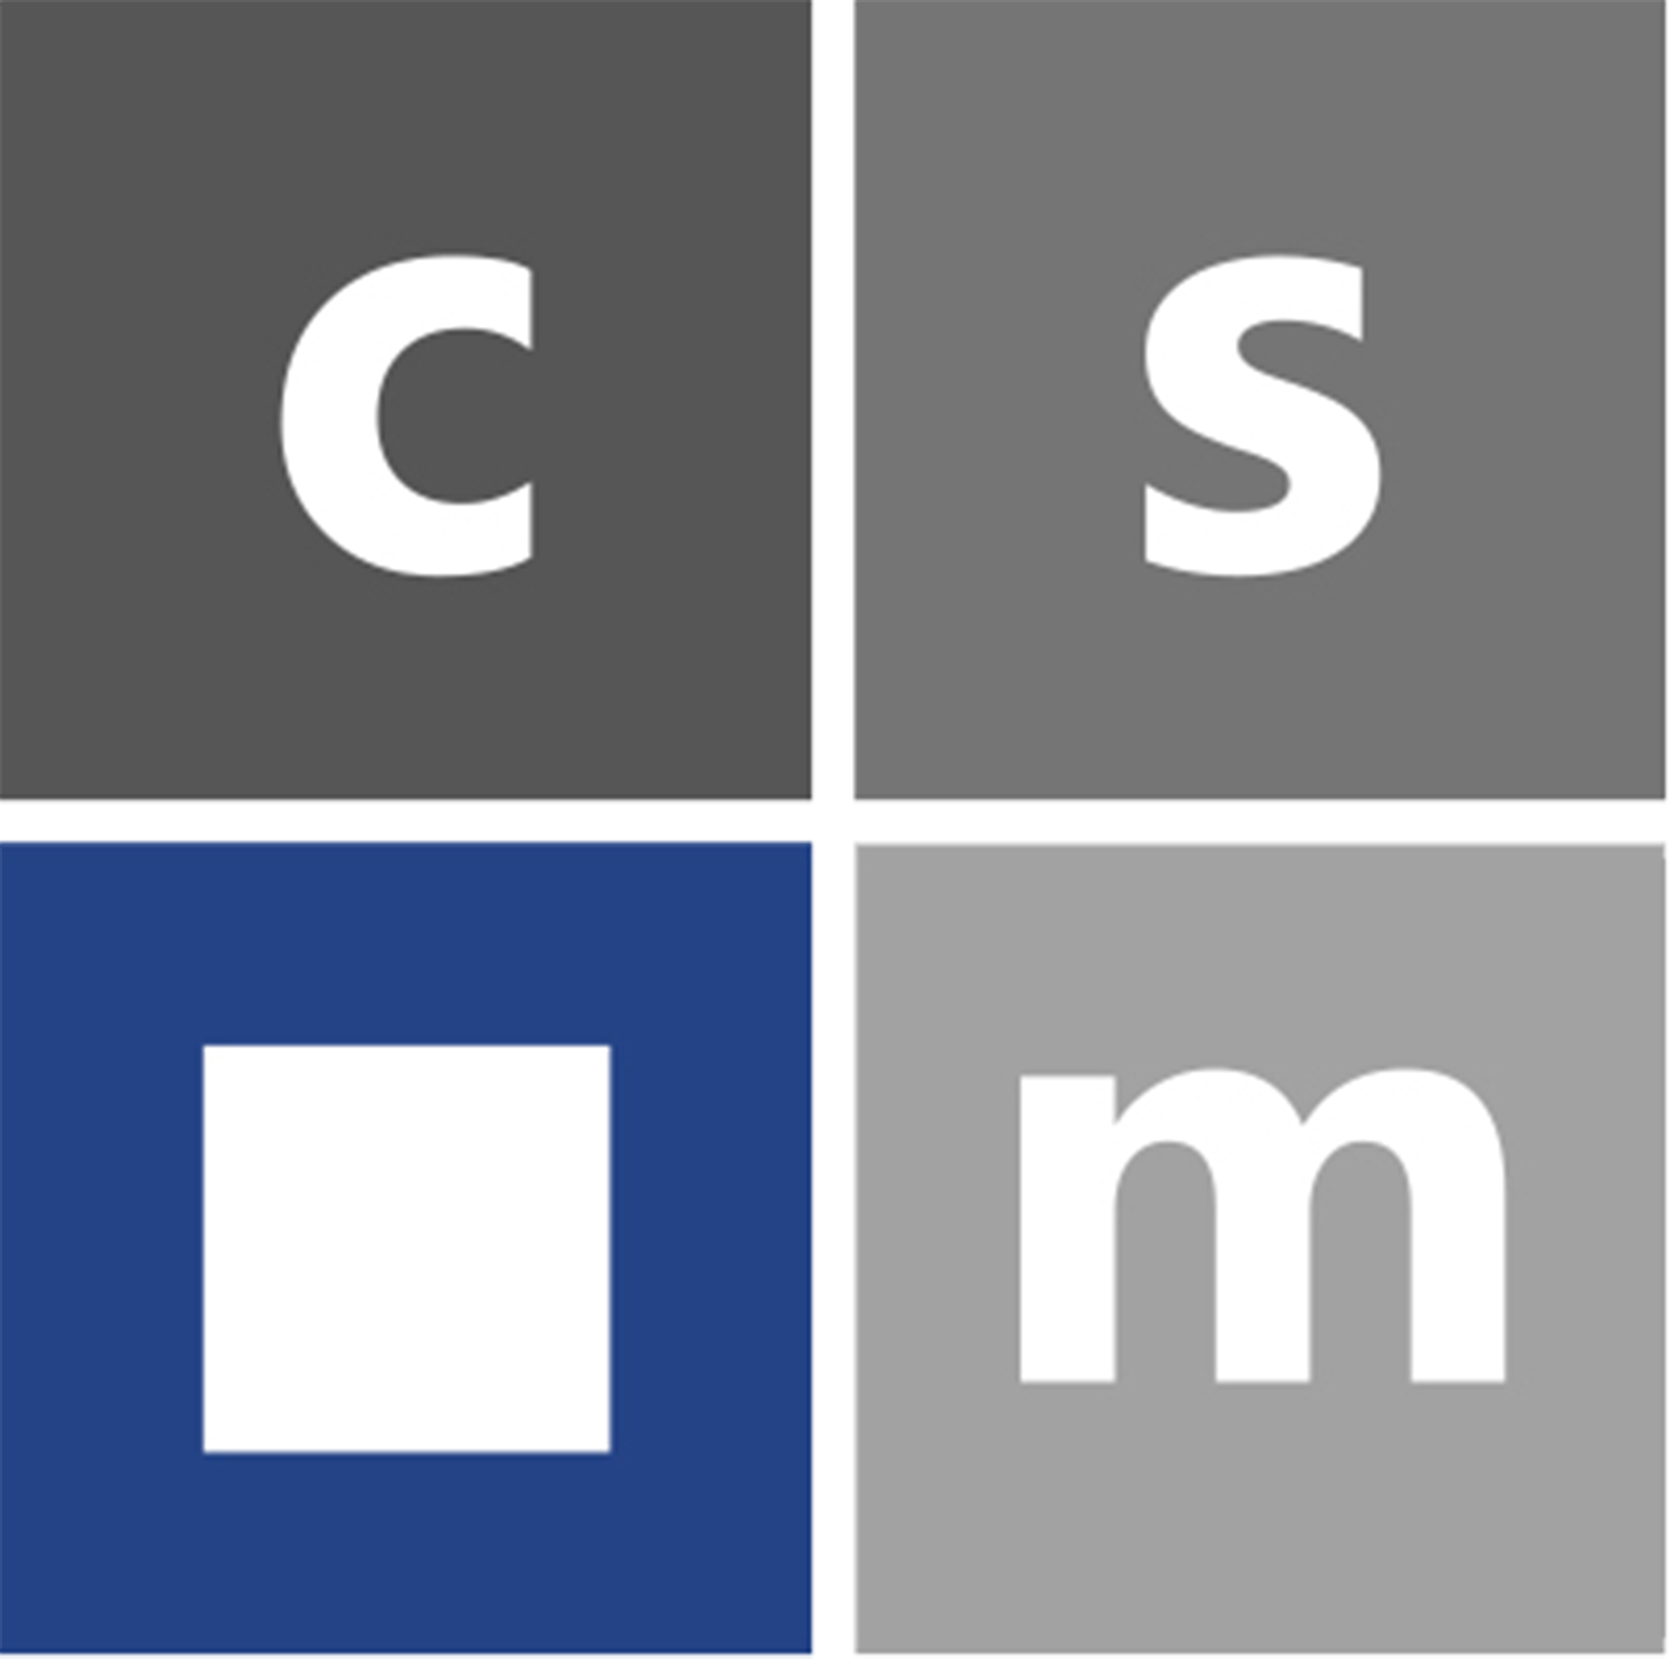 csmlogo-no-words-HR